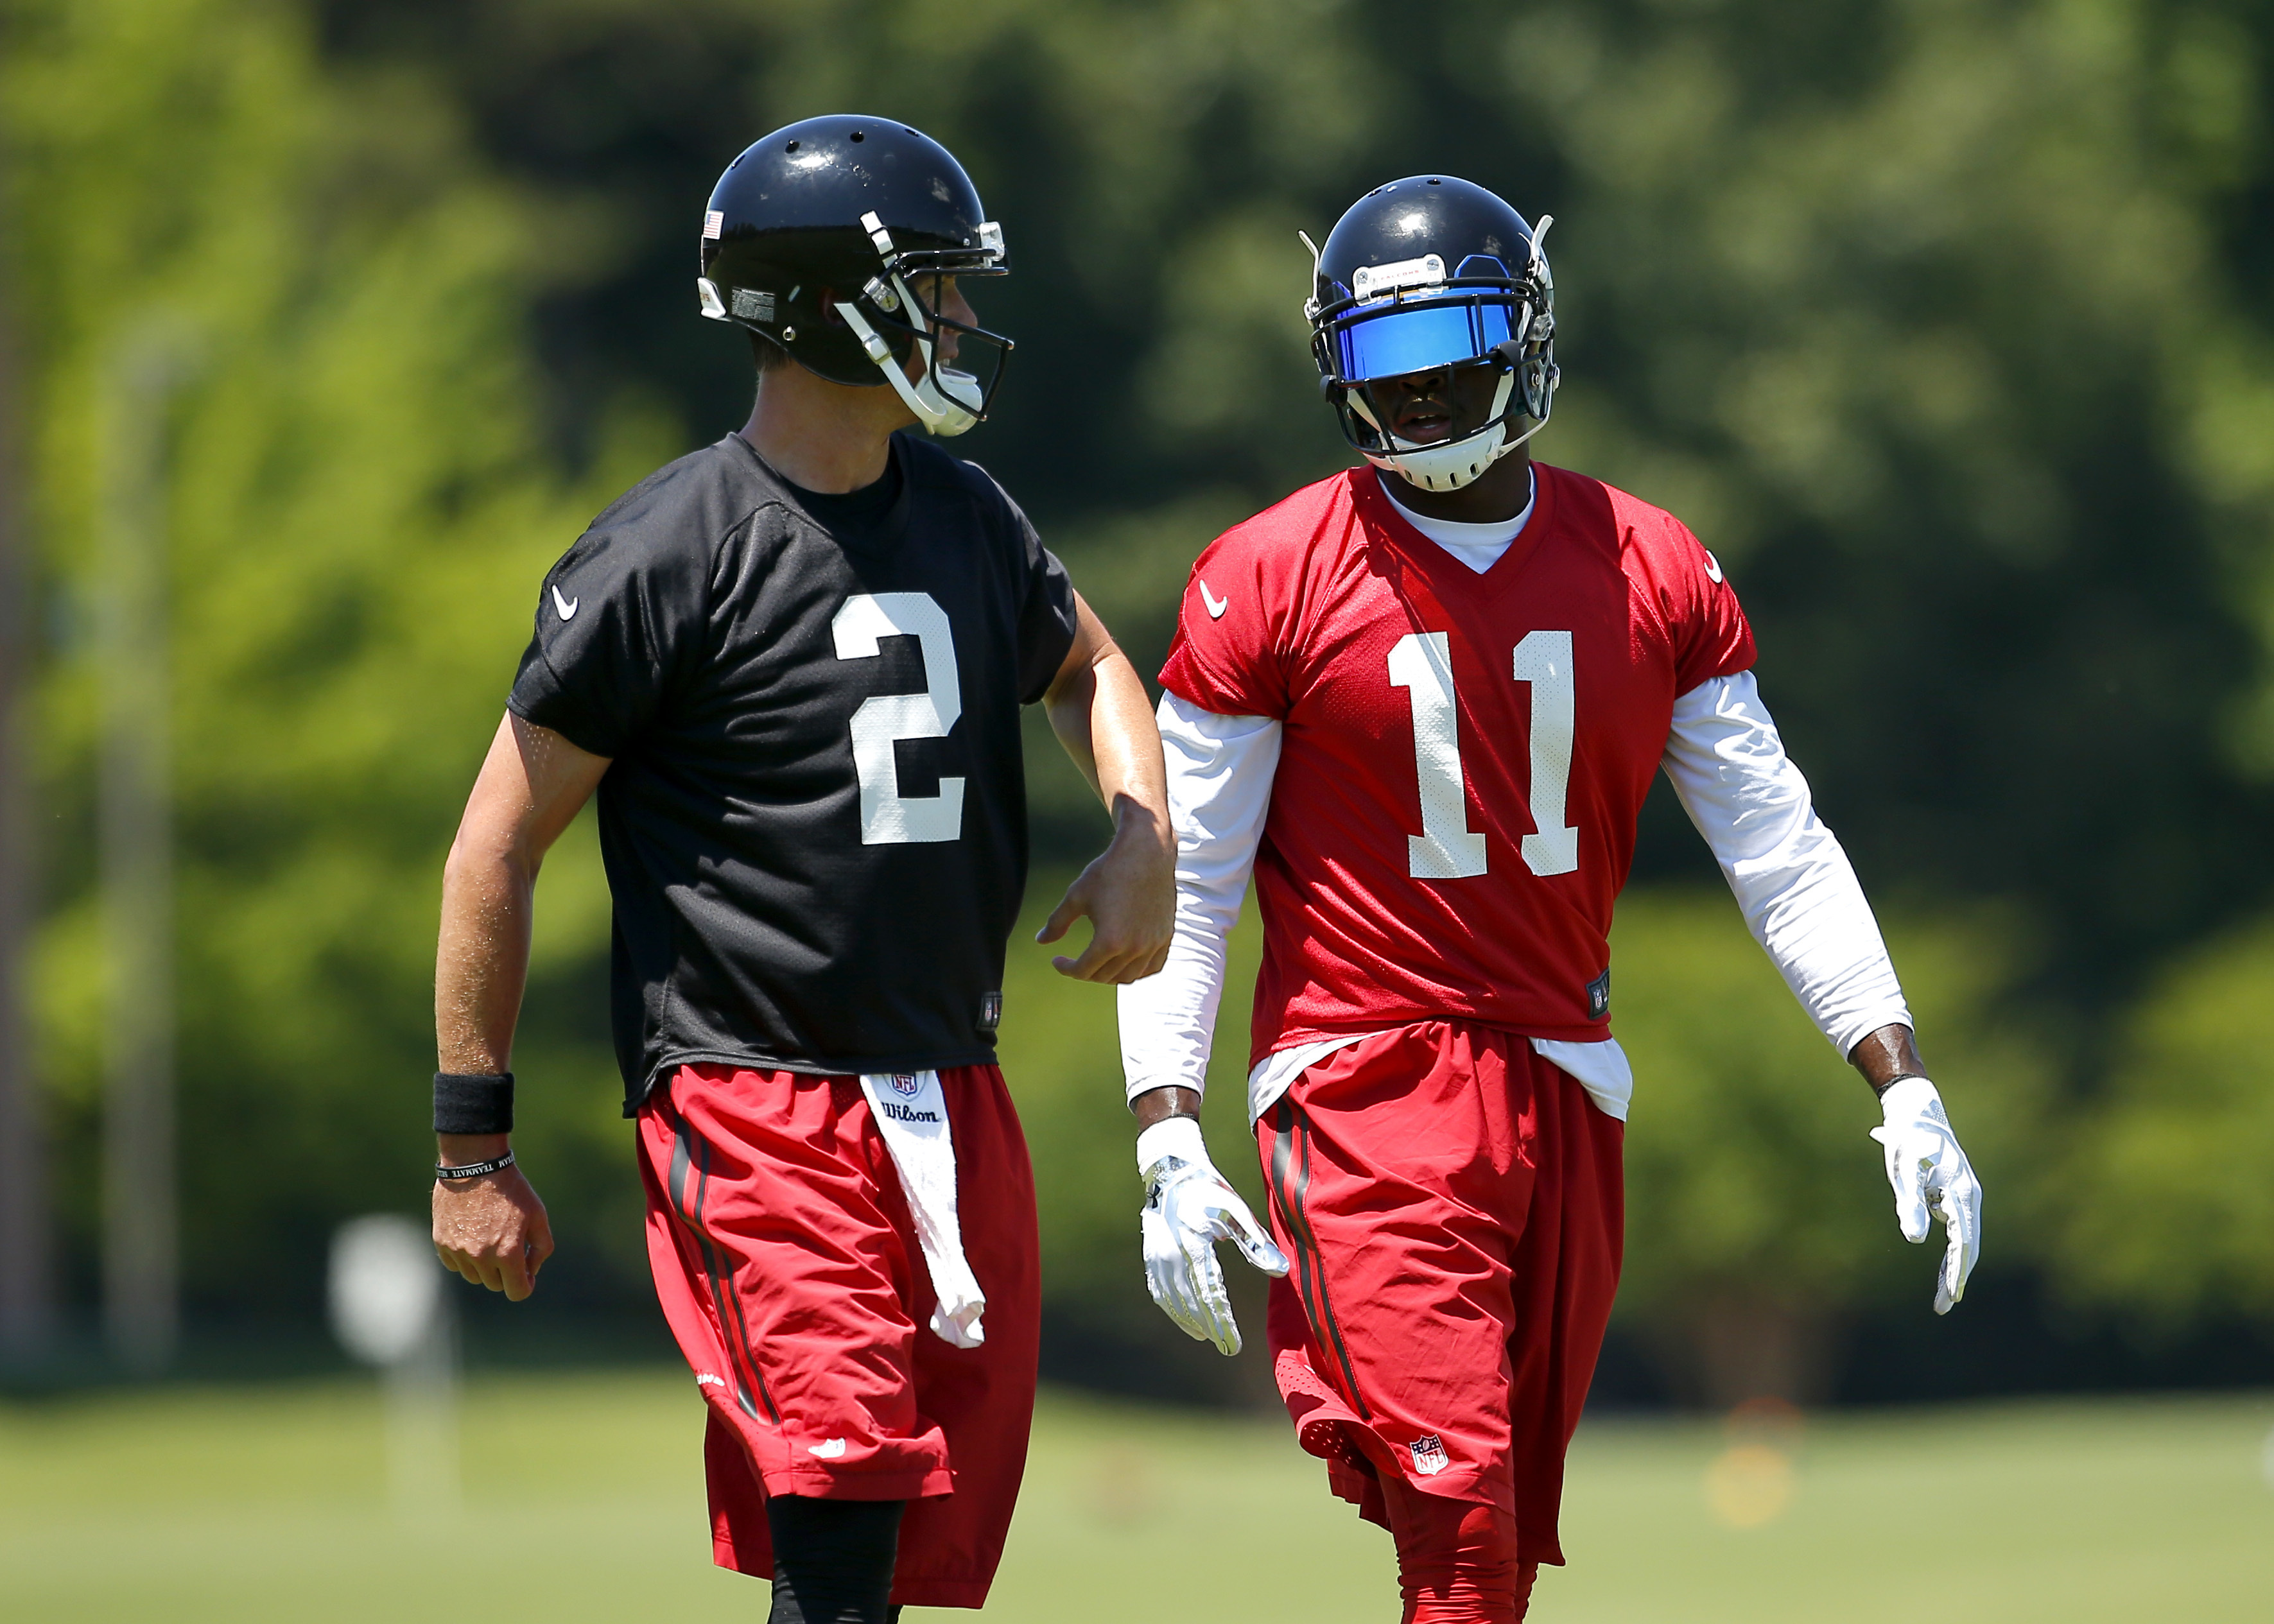 Atlanta Falcons quarterback Matt Ryan (2) speaks with wide receiver Julio Jones (11) during an NFL football practice in Flowery Branch, Ga. Tuesday, June 7, 2016. (AP Photo/Todd Kirkland)